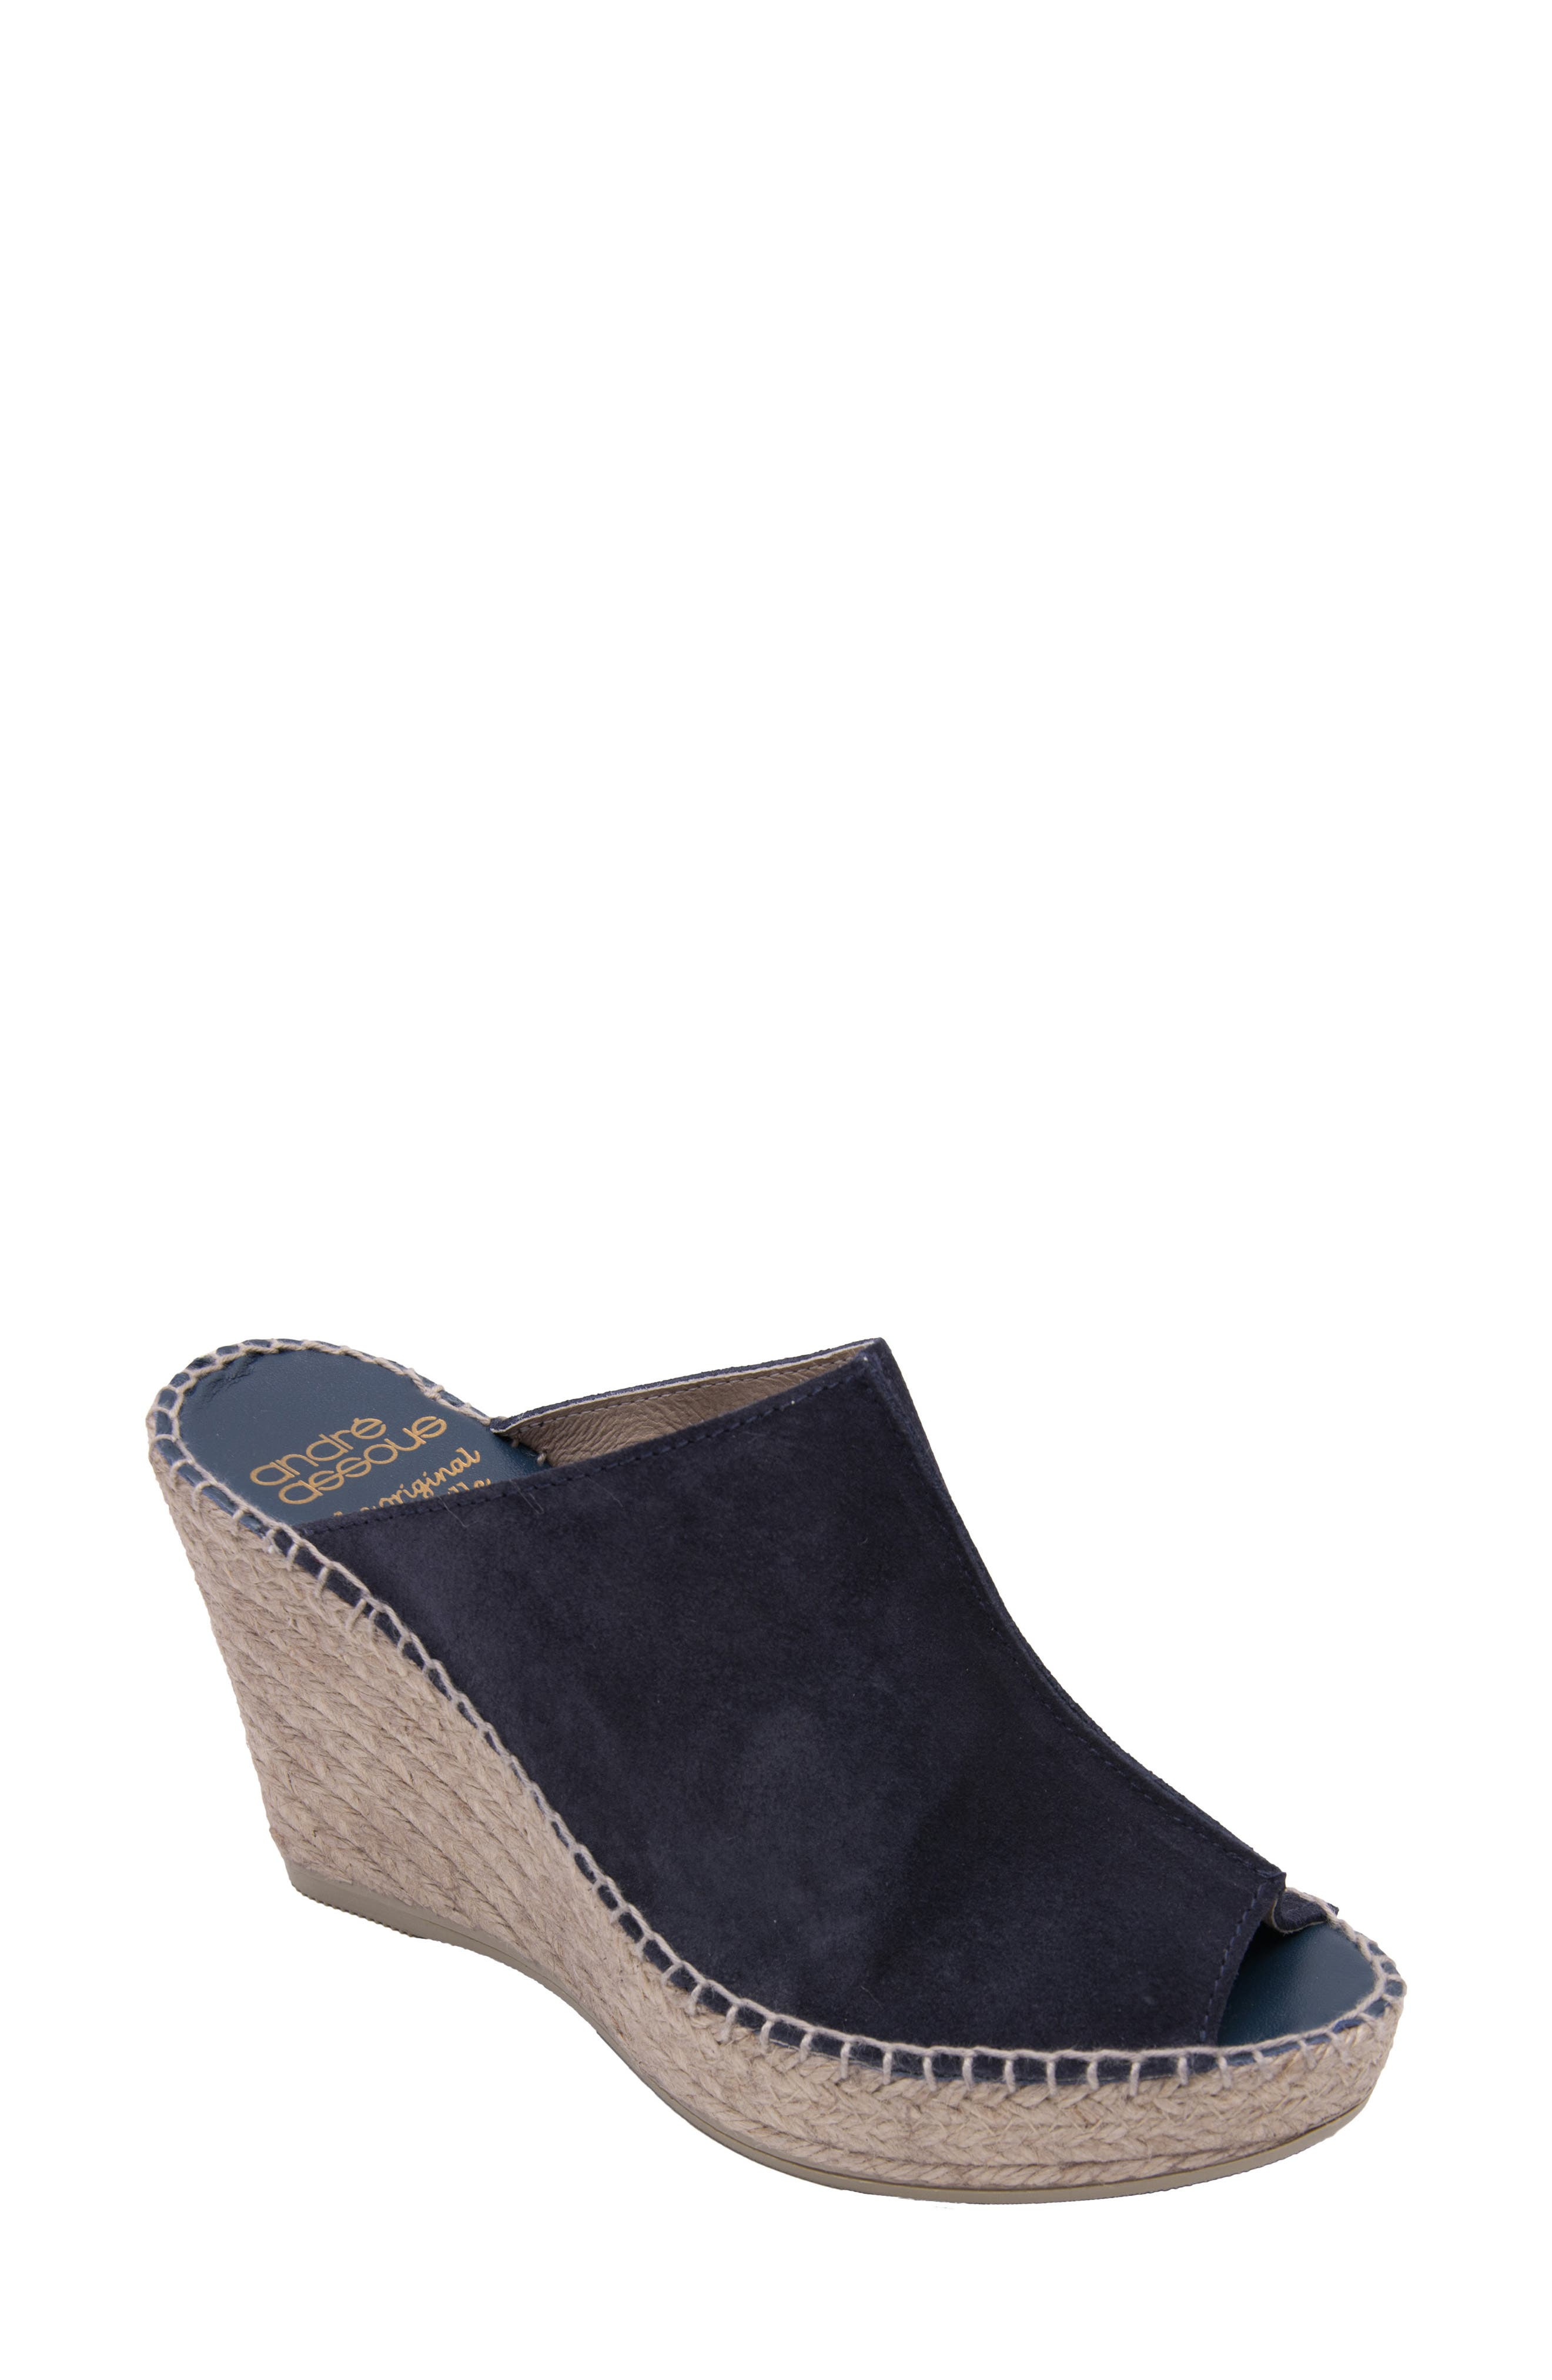 Andre Assous Cici Espadrille Wedge, Blue